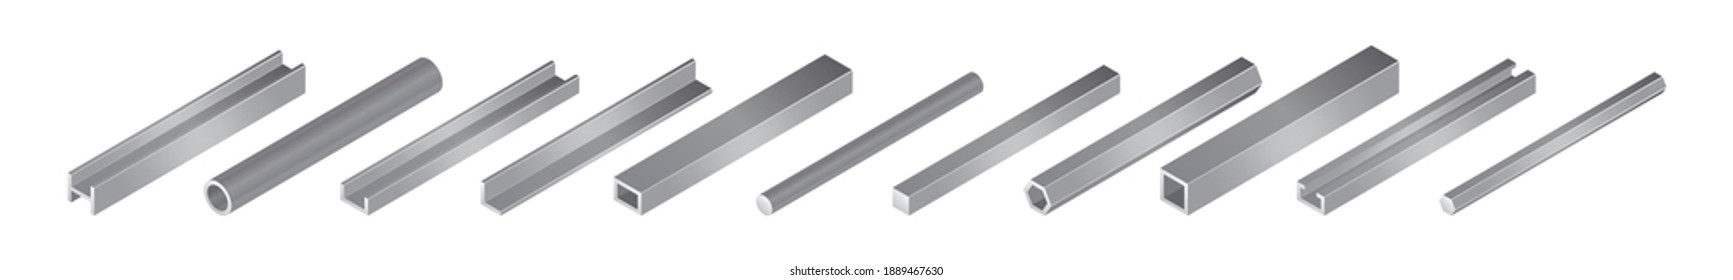 Isometric vector illustrationd different metal profile and tubes isolated on white background. Set of steel beam tubes and pipes vector icons in flat cartoon style. Steel construction materials.